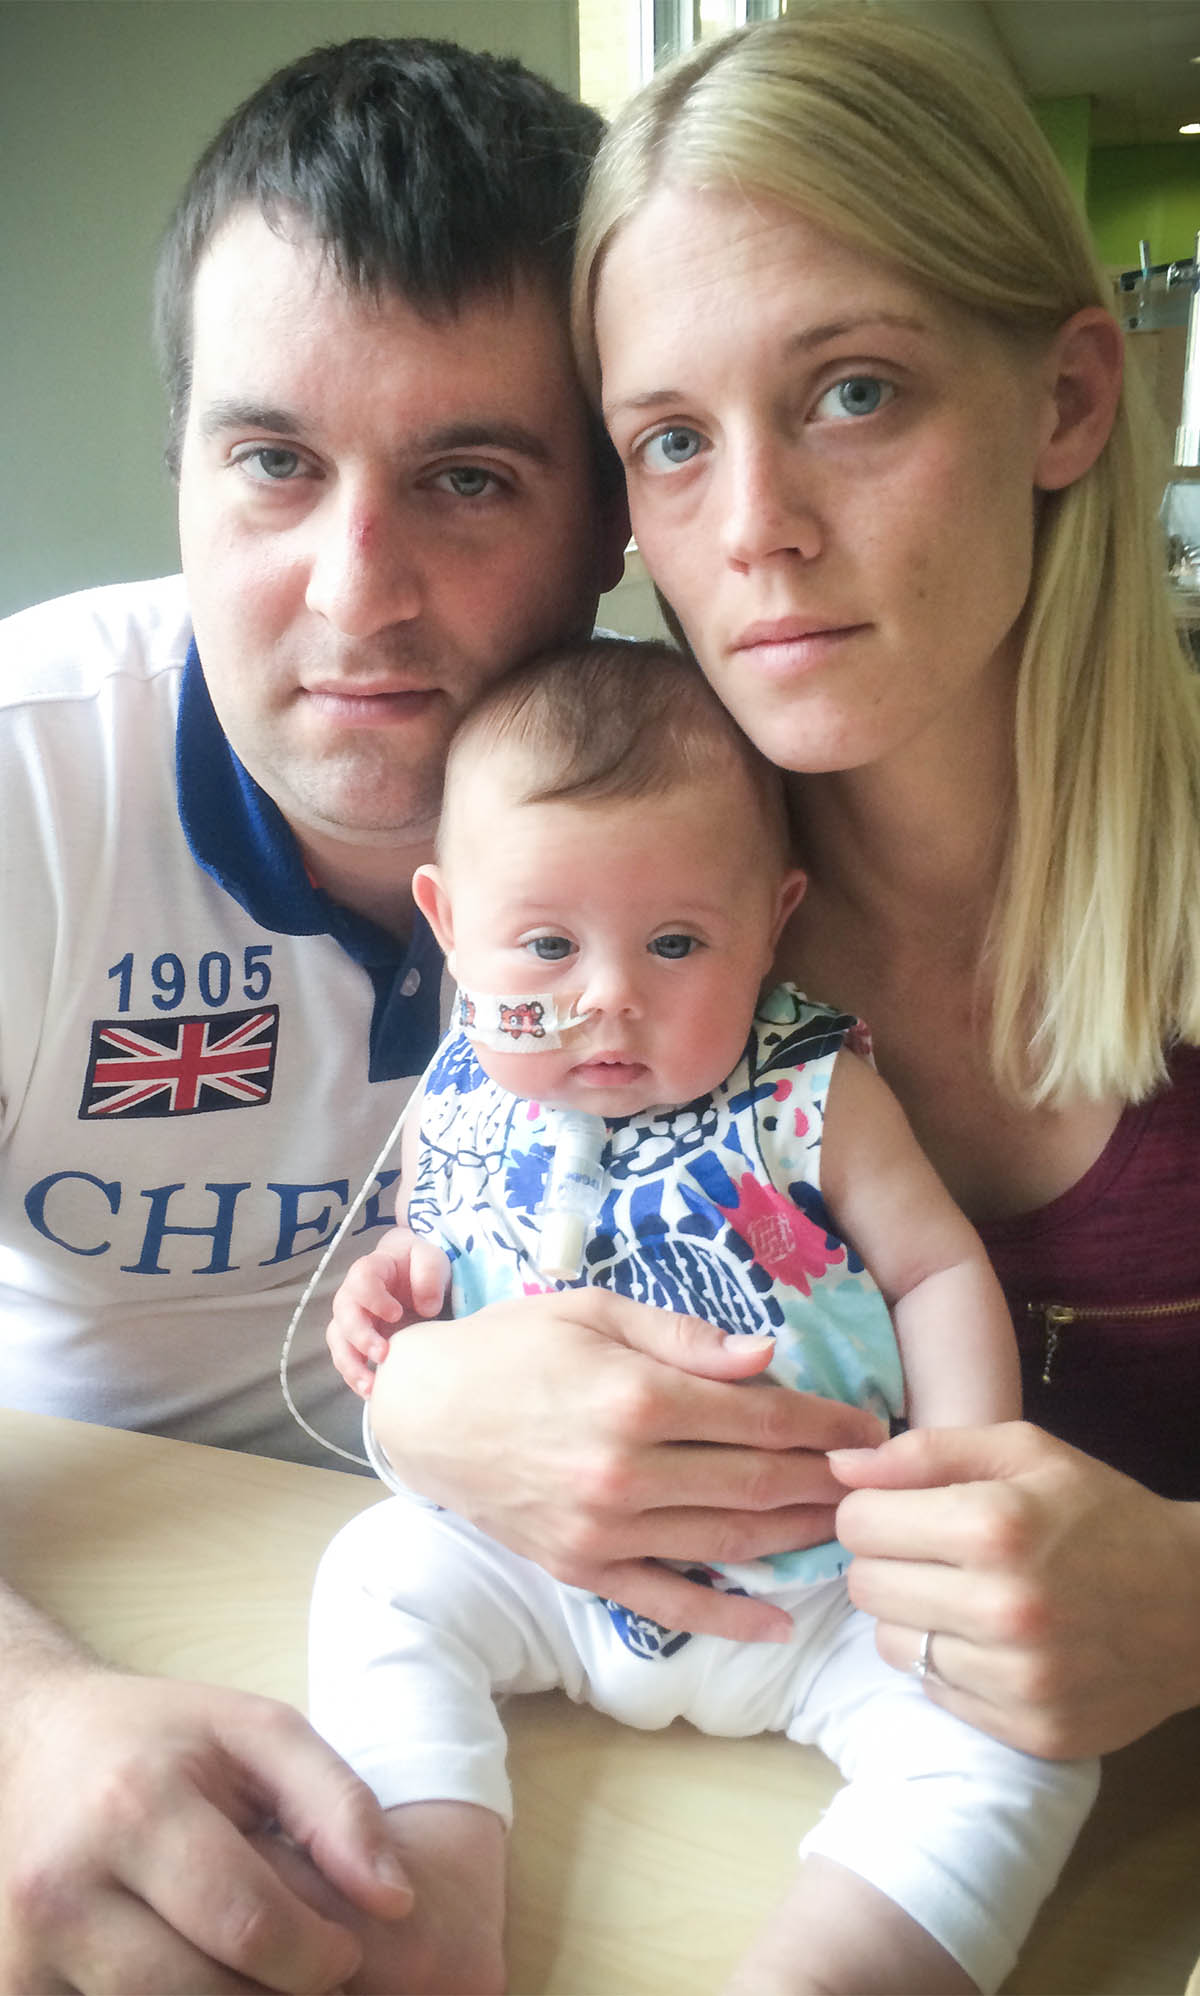 Ricky Clitheroe and Amy Keith with their daughter Poppy.